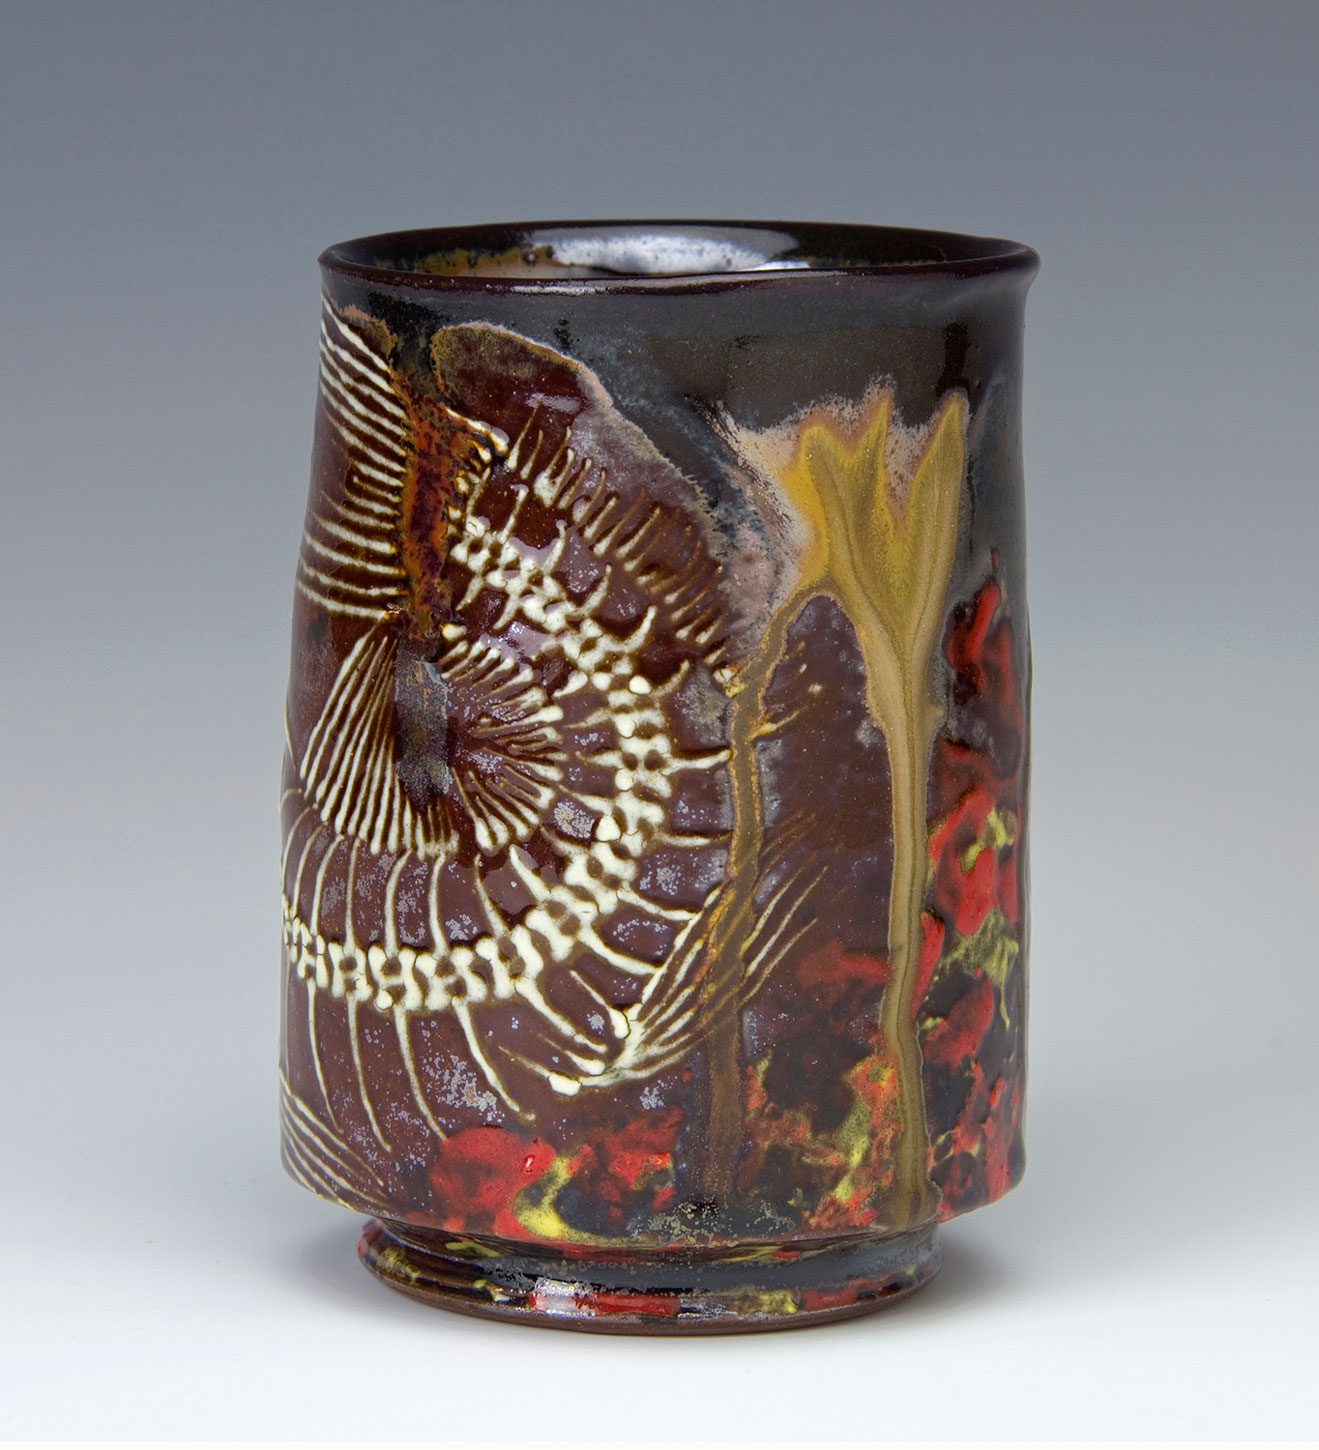 Fossil-Fish-Art-Pottery-Cup-Bruce-Gholson.jpg